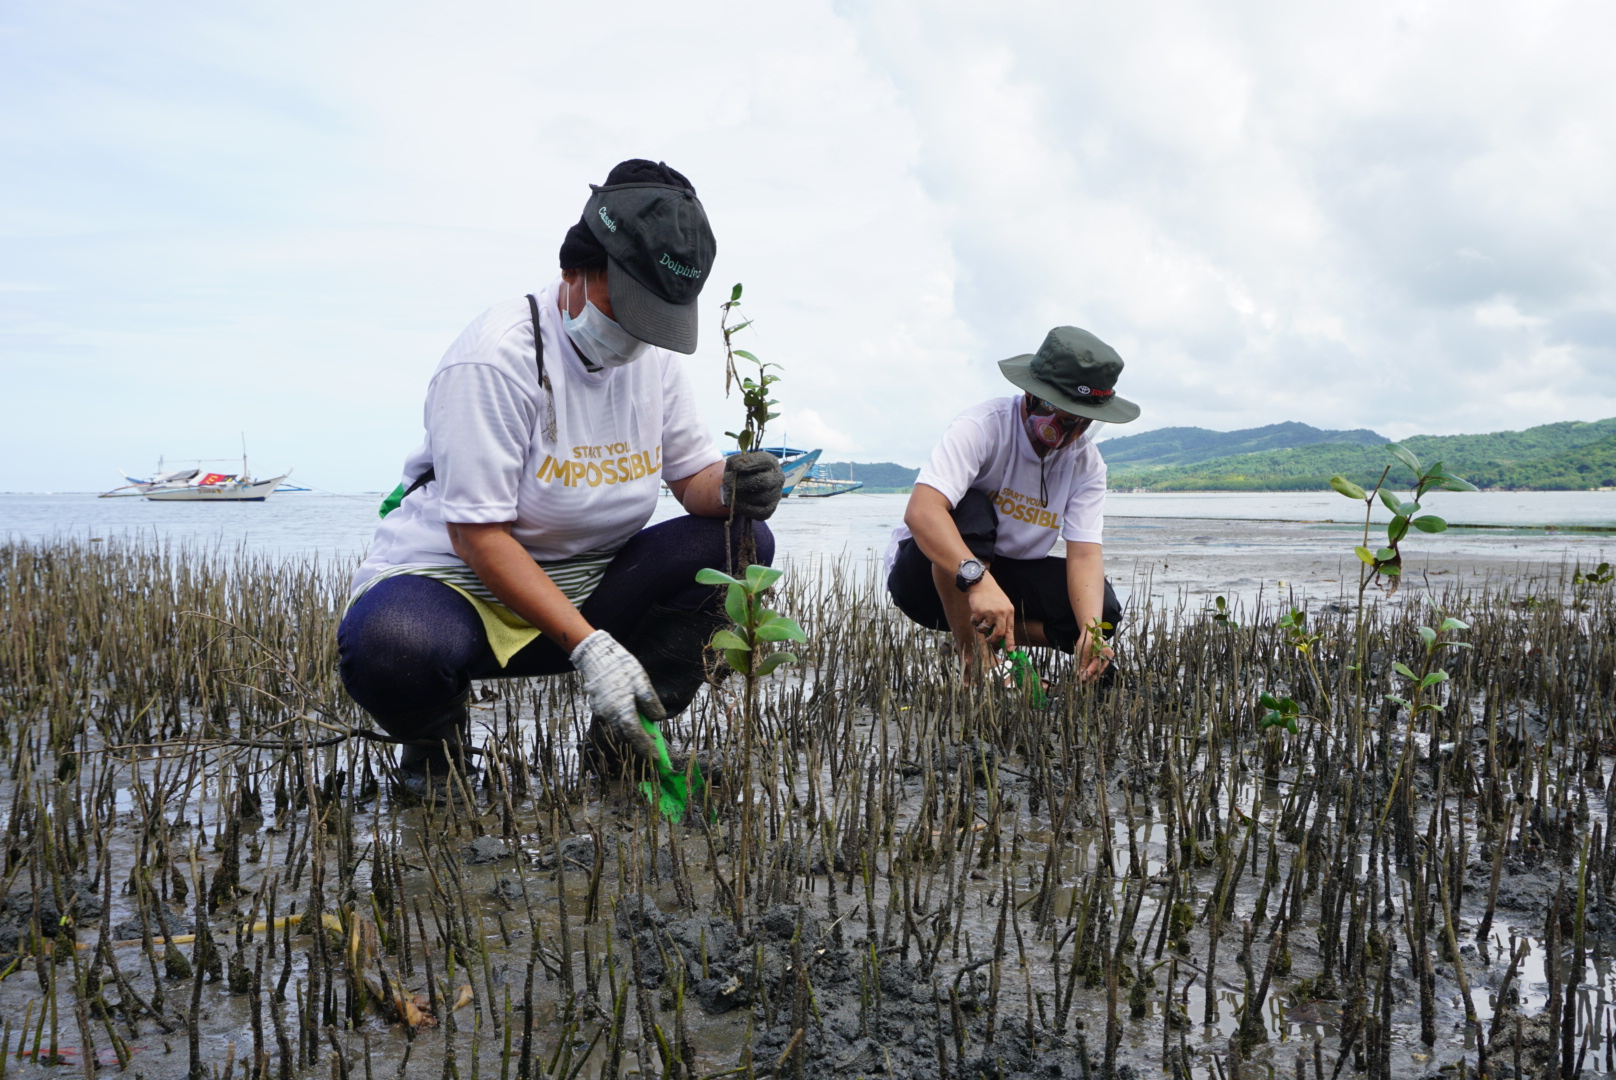 Toyota adopts 10-HA mangrove plantation area in Lian, Batangas.